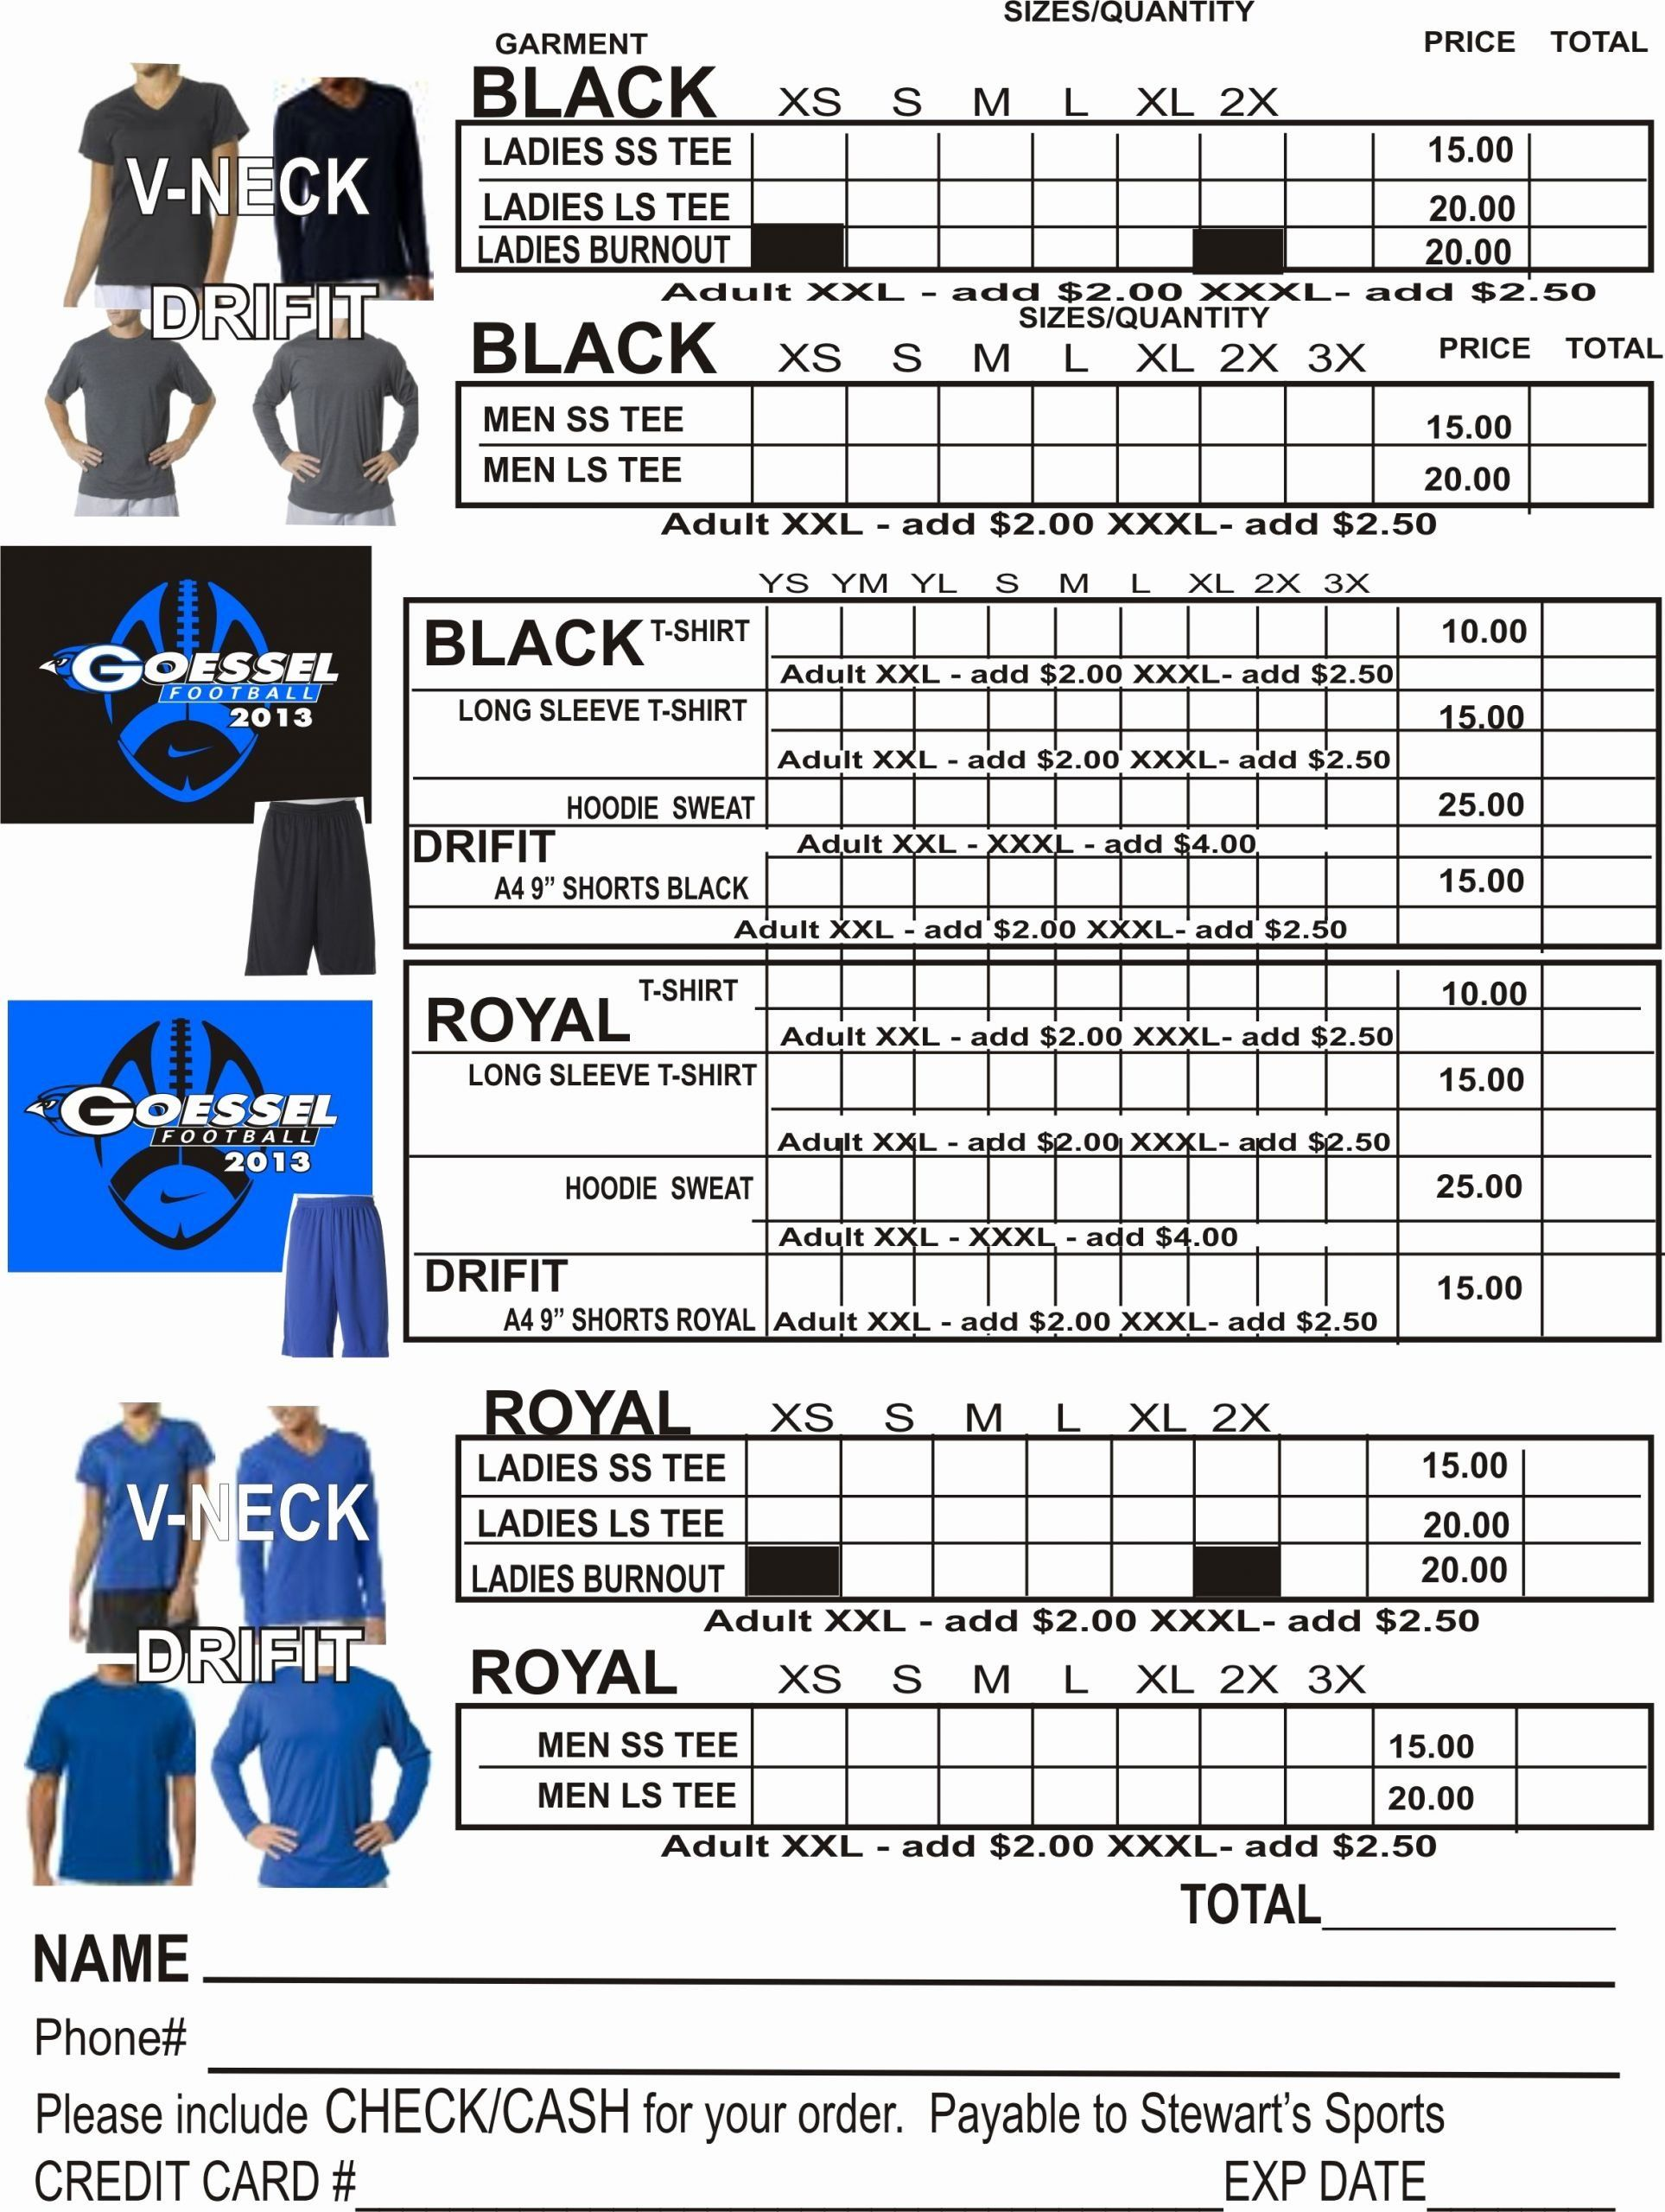 Apparel Order Form Template Free Beautiful Apparel Order Form Template Ten Advice That You Order Form Template Free Order Form Template Fundraising Order Form Apparel order form template free